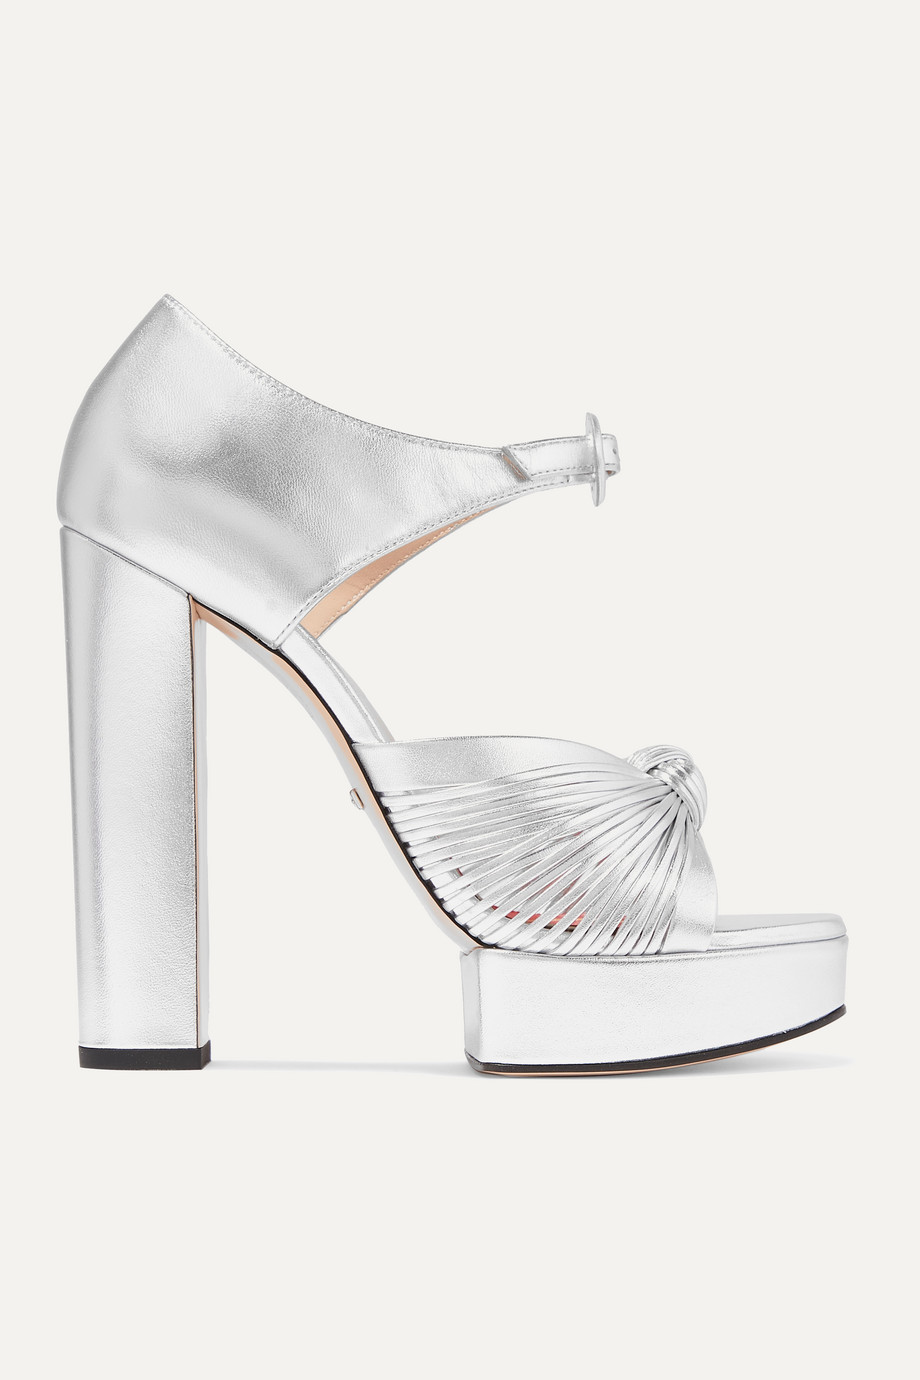 Gucci Crawford knotted metallic leather platform sandals